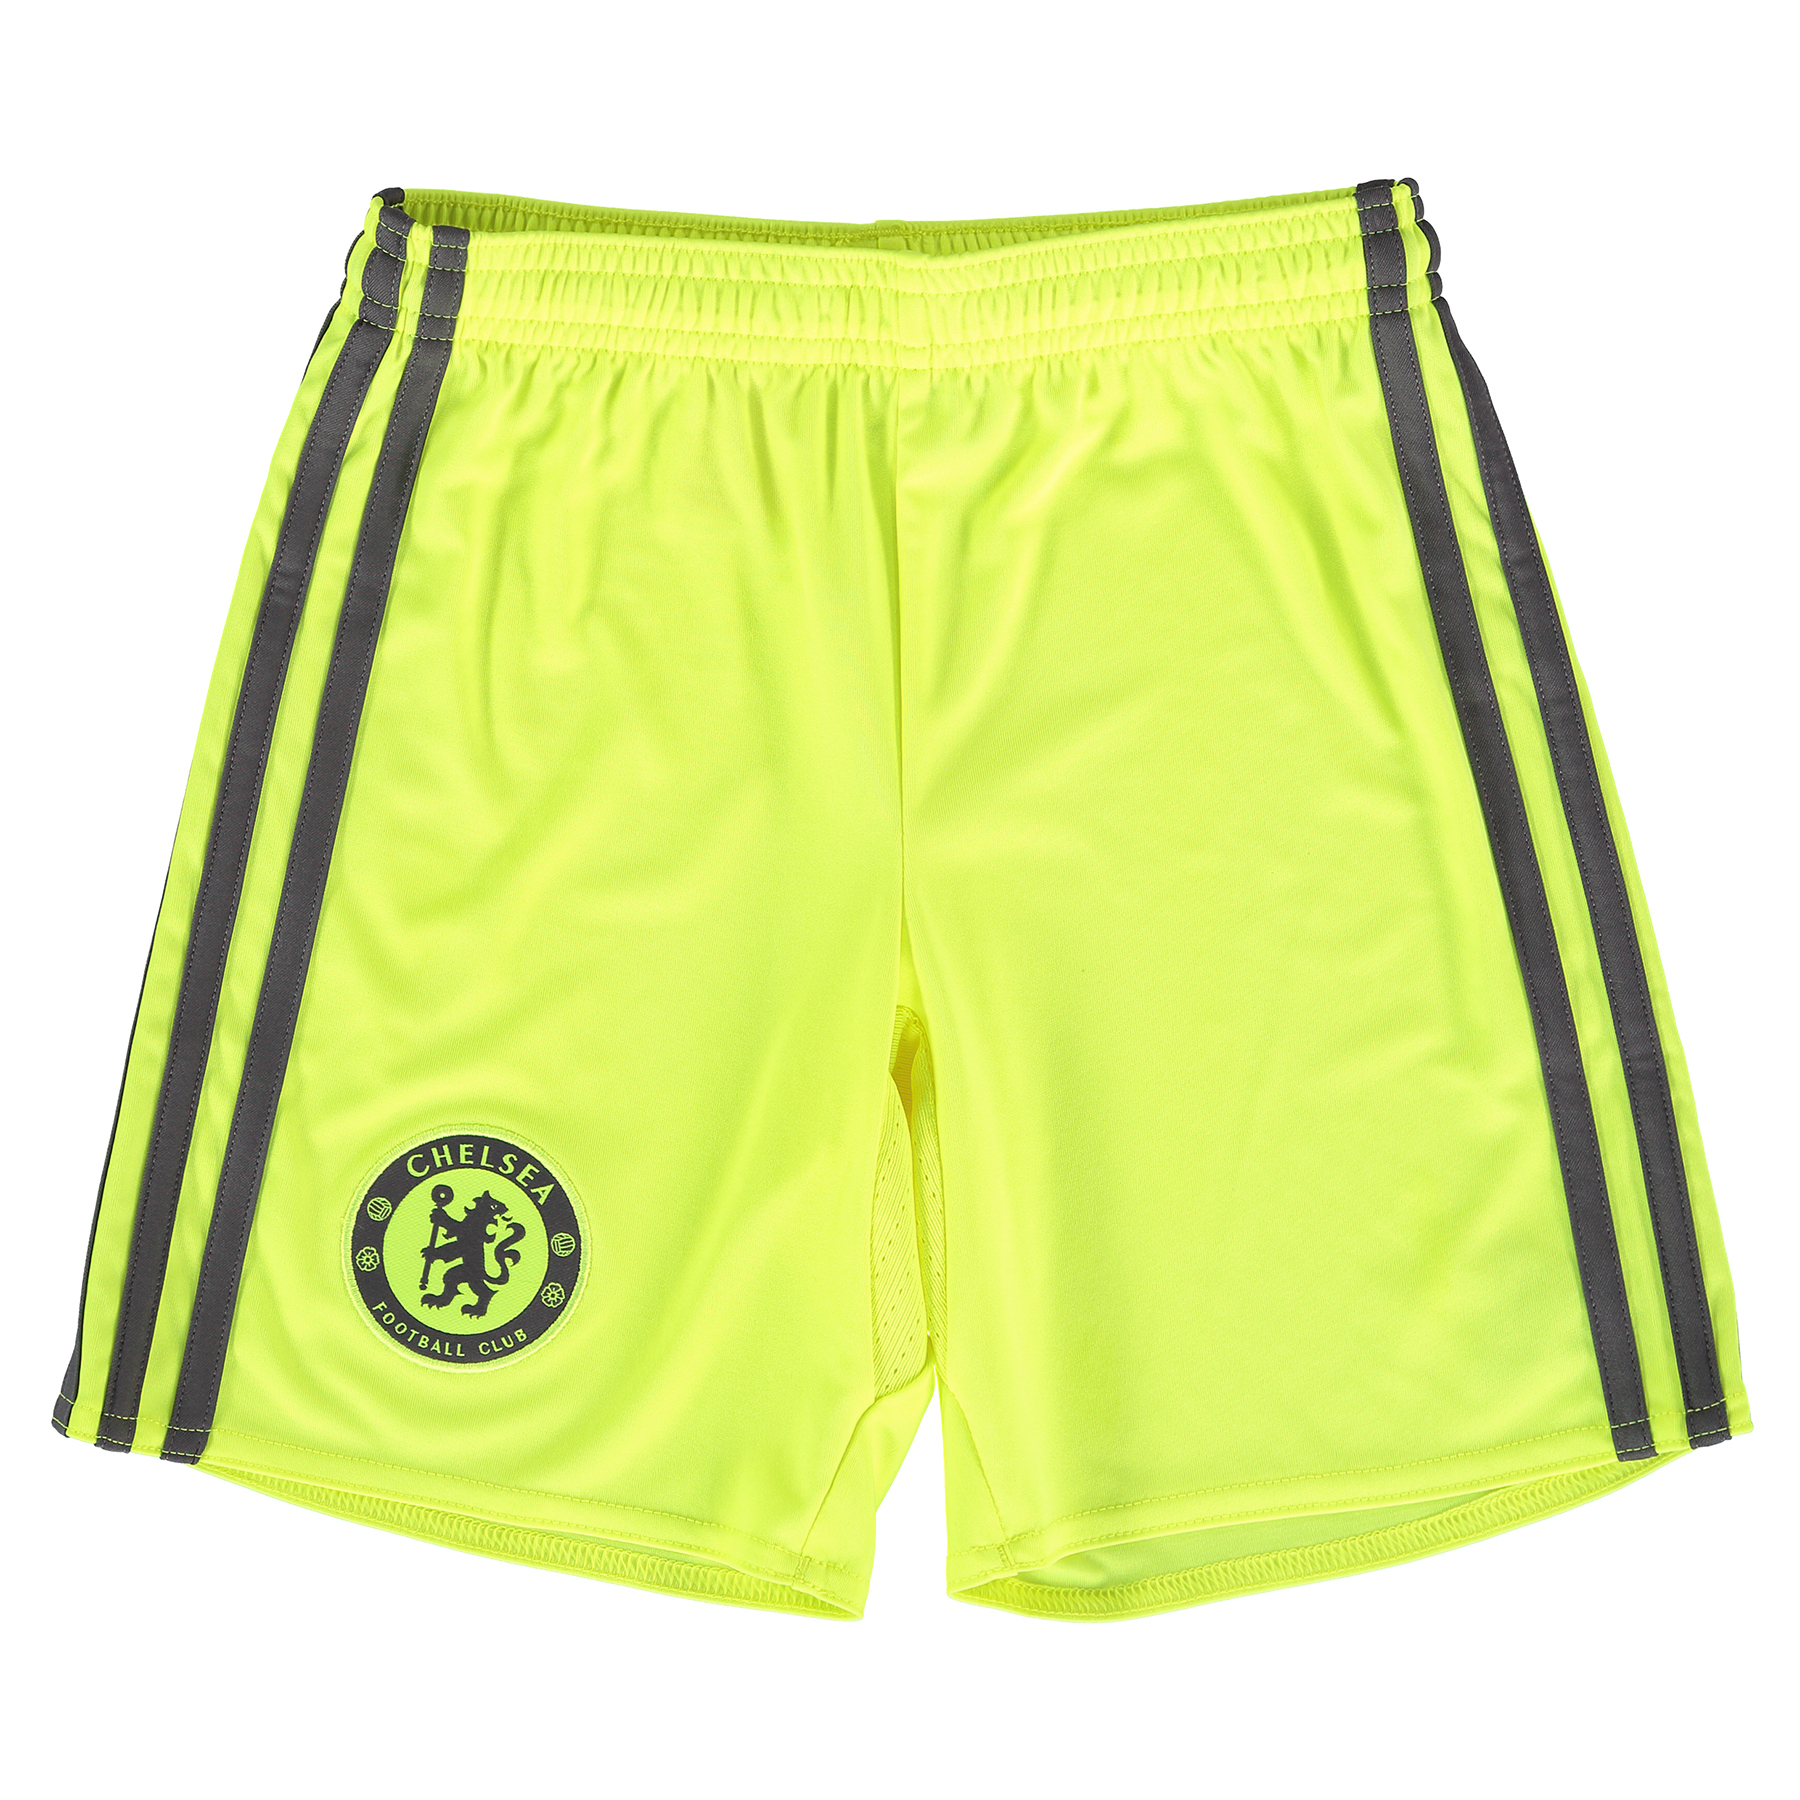 Chelsea Goalkeeper Shorts 16-17 - Kids   Build a professional matchday image worthy of a Stamford Bridge shot stopper with these official Chelsea Goalkeeper Shorts 16-17 - Kids.   With the club represented in woven crest form, advanced Climacool® heat and moisture management helps ensure the kind of cool composure required by a young Chelsea #1, with these 2016-17 Chelsea kids' goalkeeper shorts a perfect match for the club's solar yellow and granite goalkeeping jersey.   Benefits:   Climacool® heat and moisture management Club crest: woven badge 100% recycled polyester